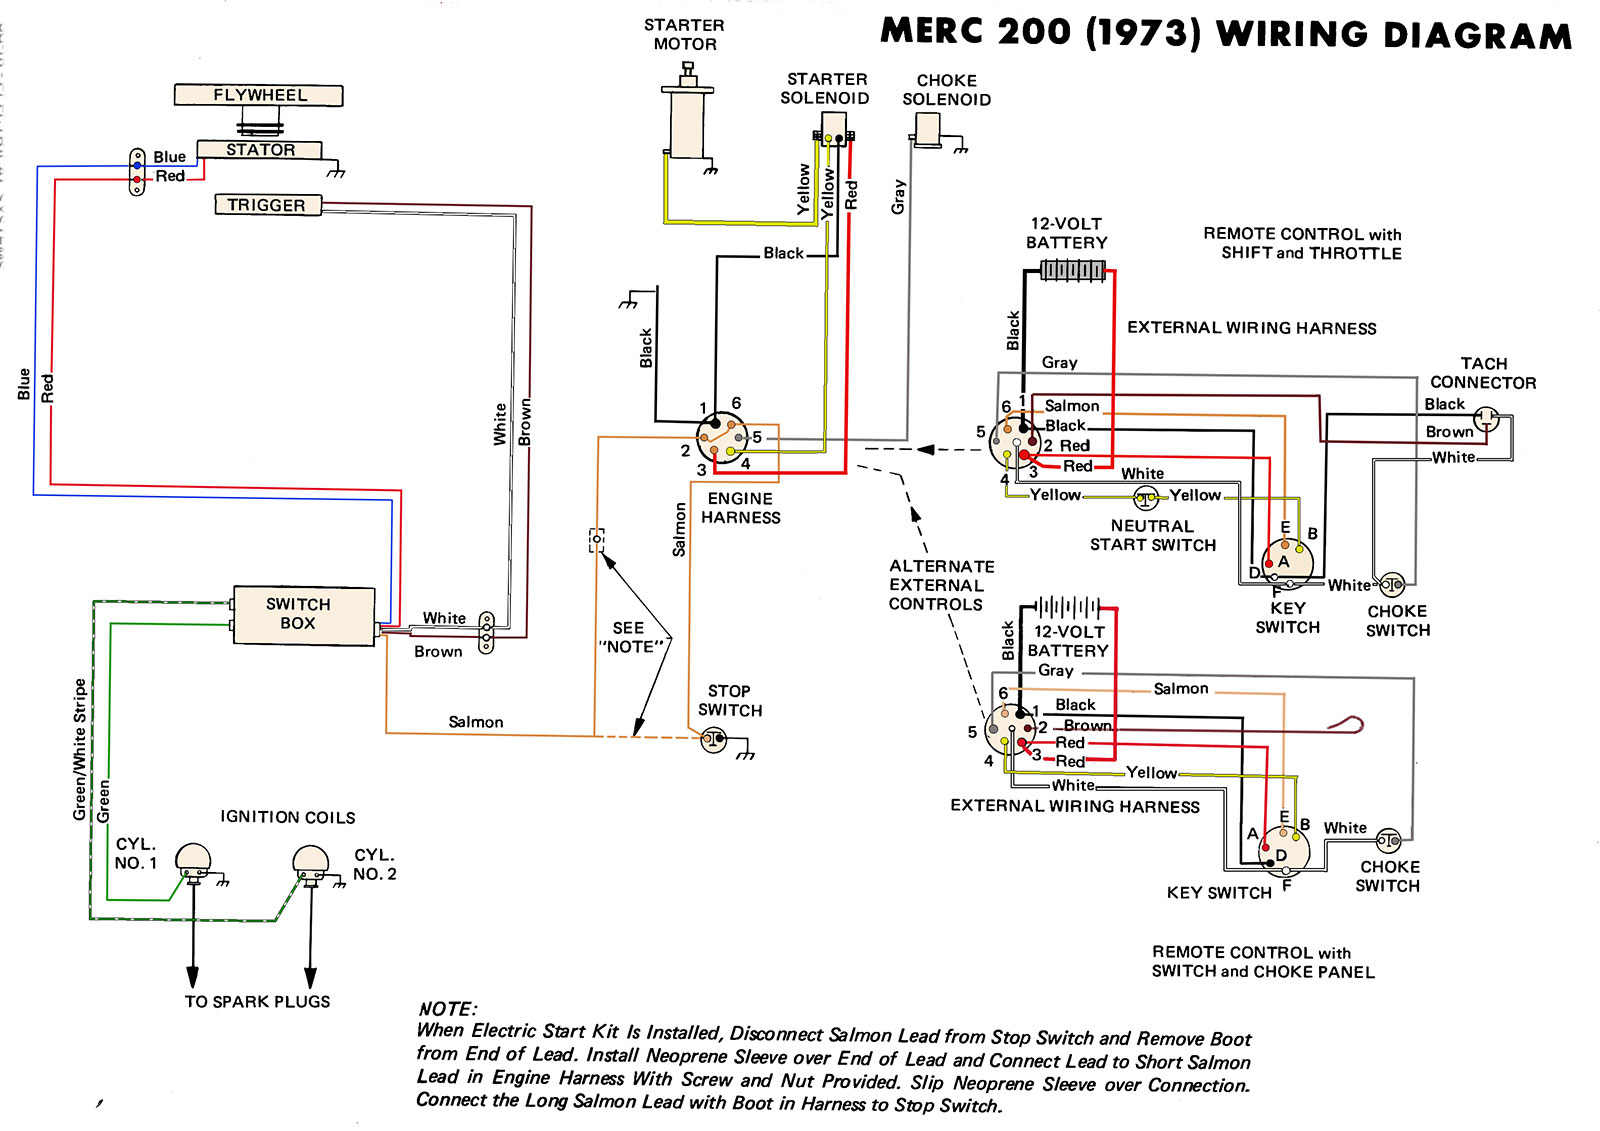 Garage Door Wiring Diagram Harness Diagrams Likewise Cold Room On As Well Boat Electrical Mercury Outboard